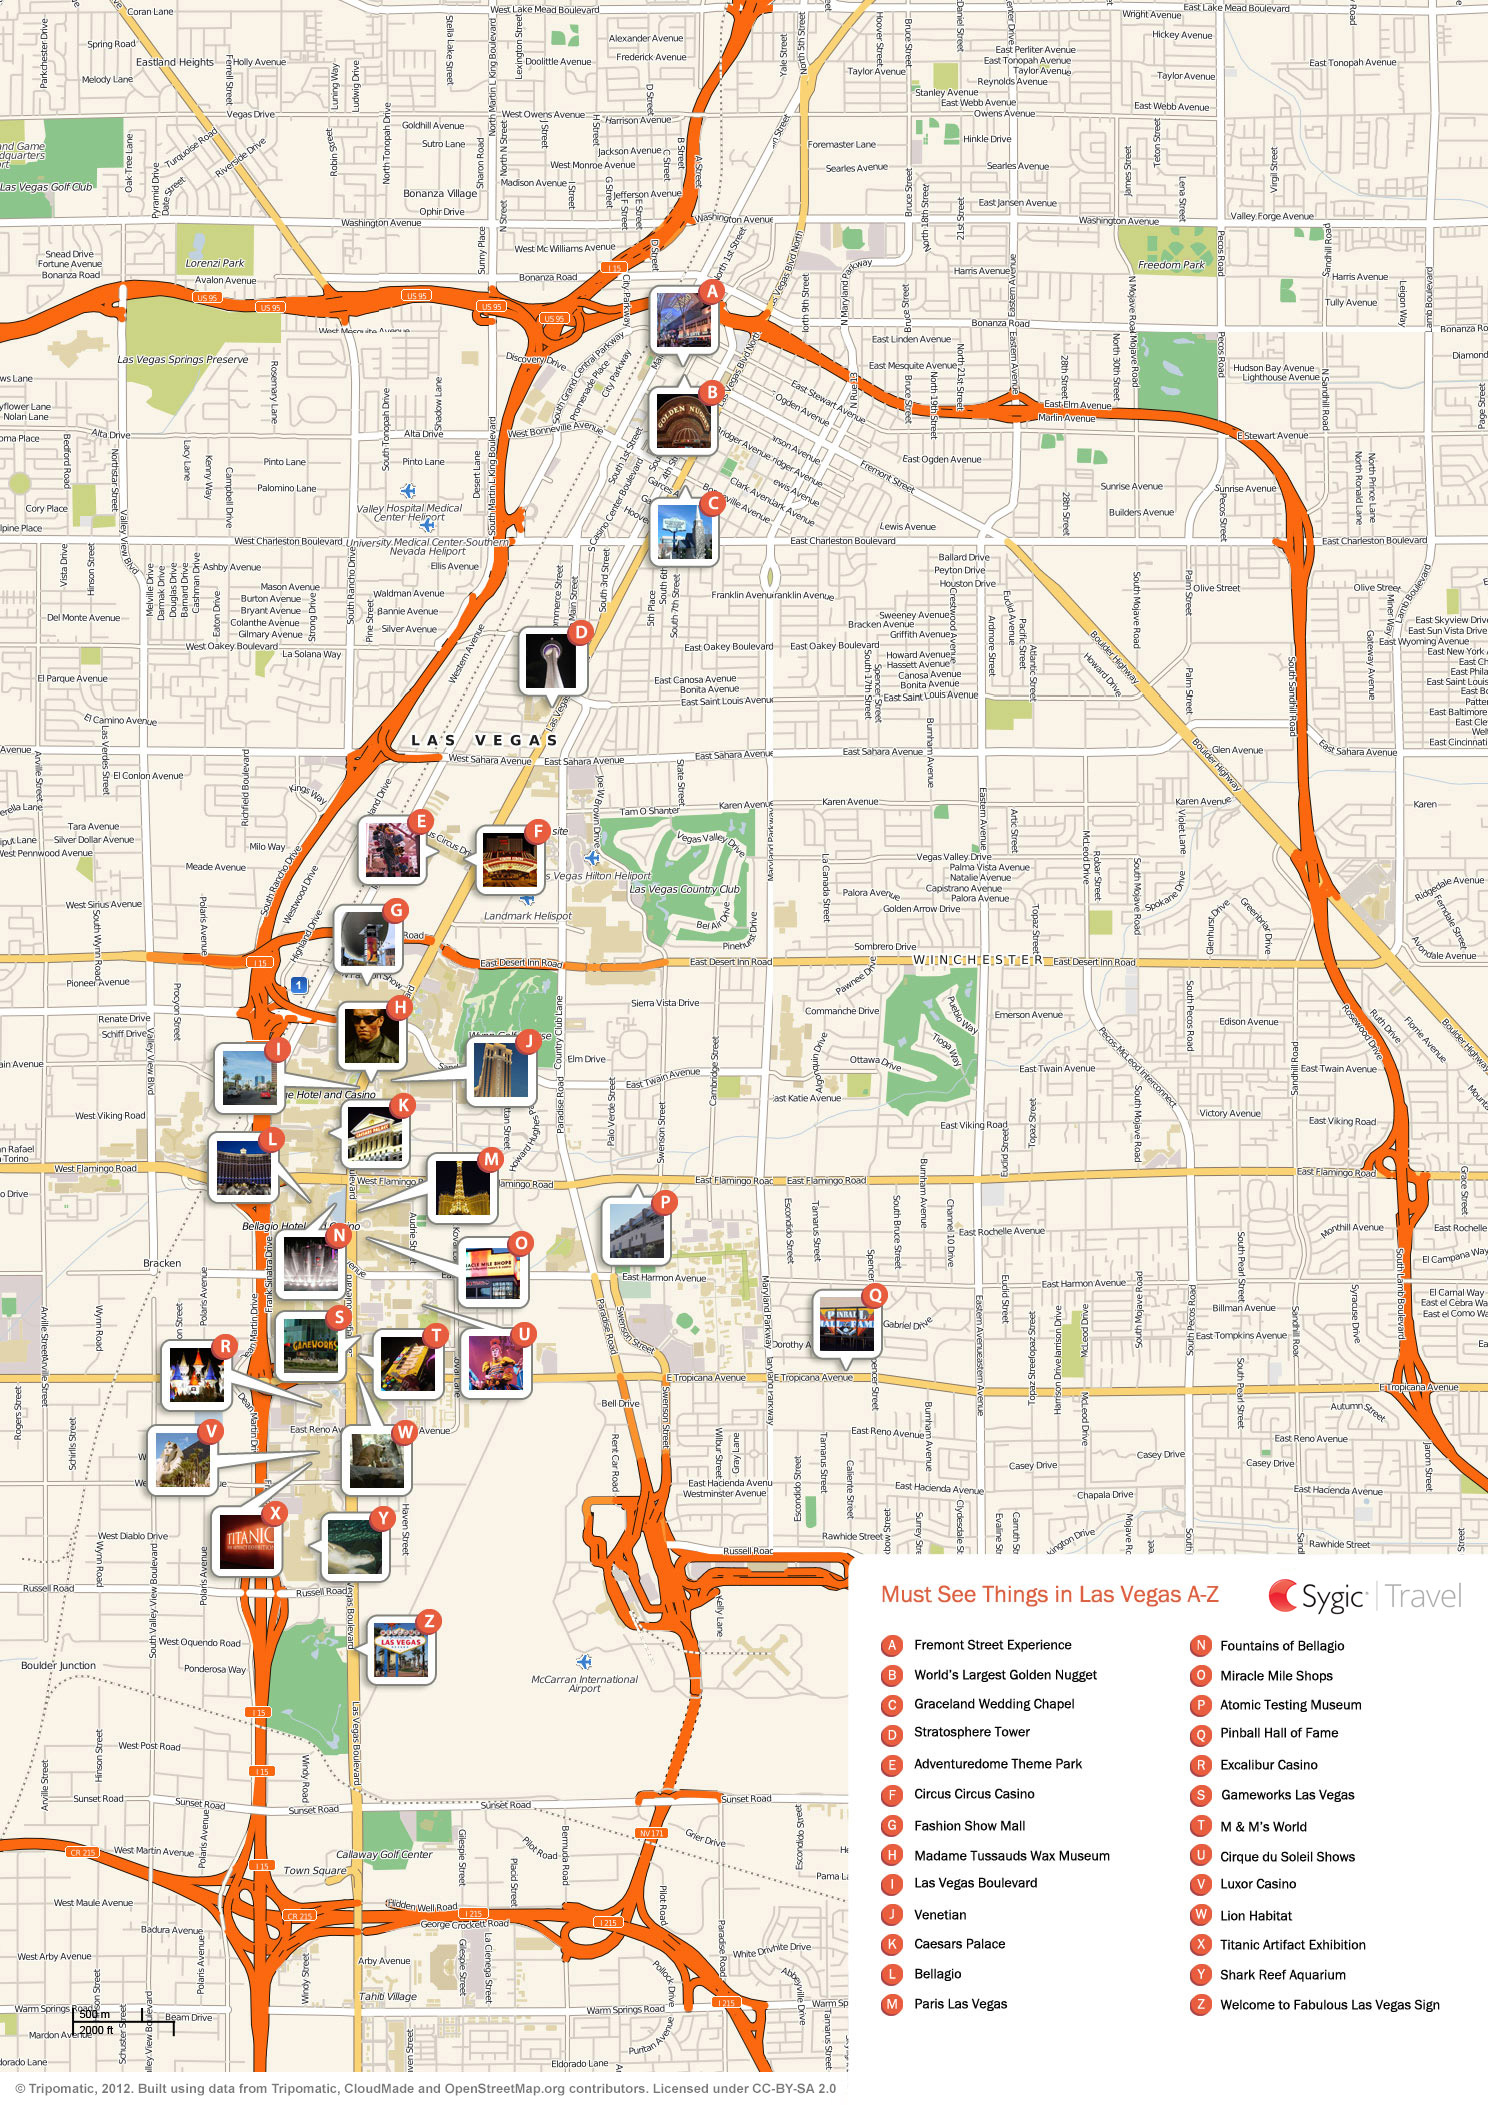 Las Vegas Printable Tourist Map – Printable Nyc Tourist Map